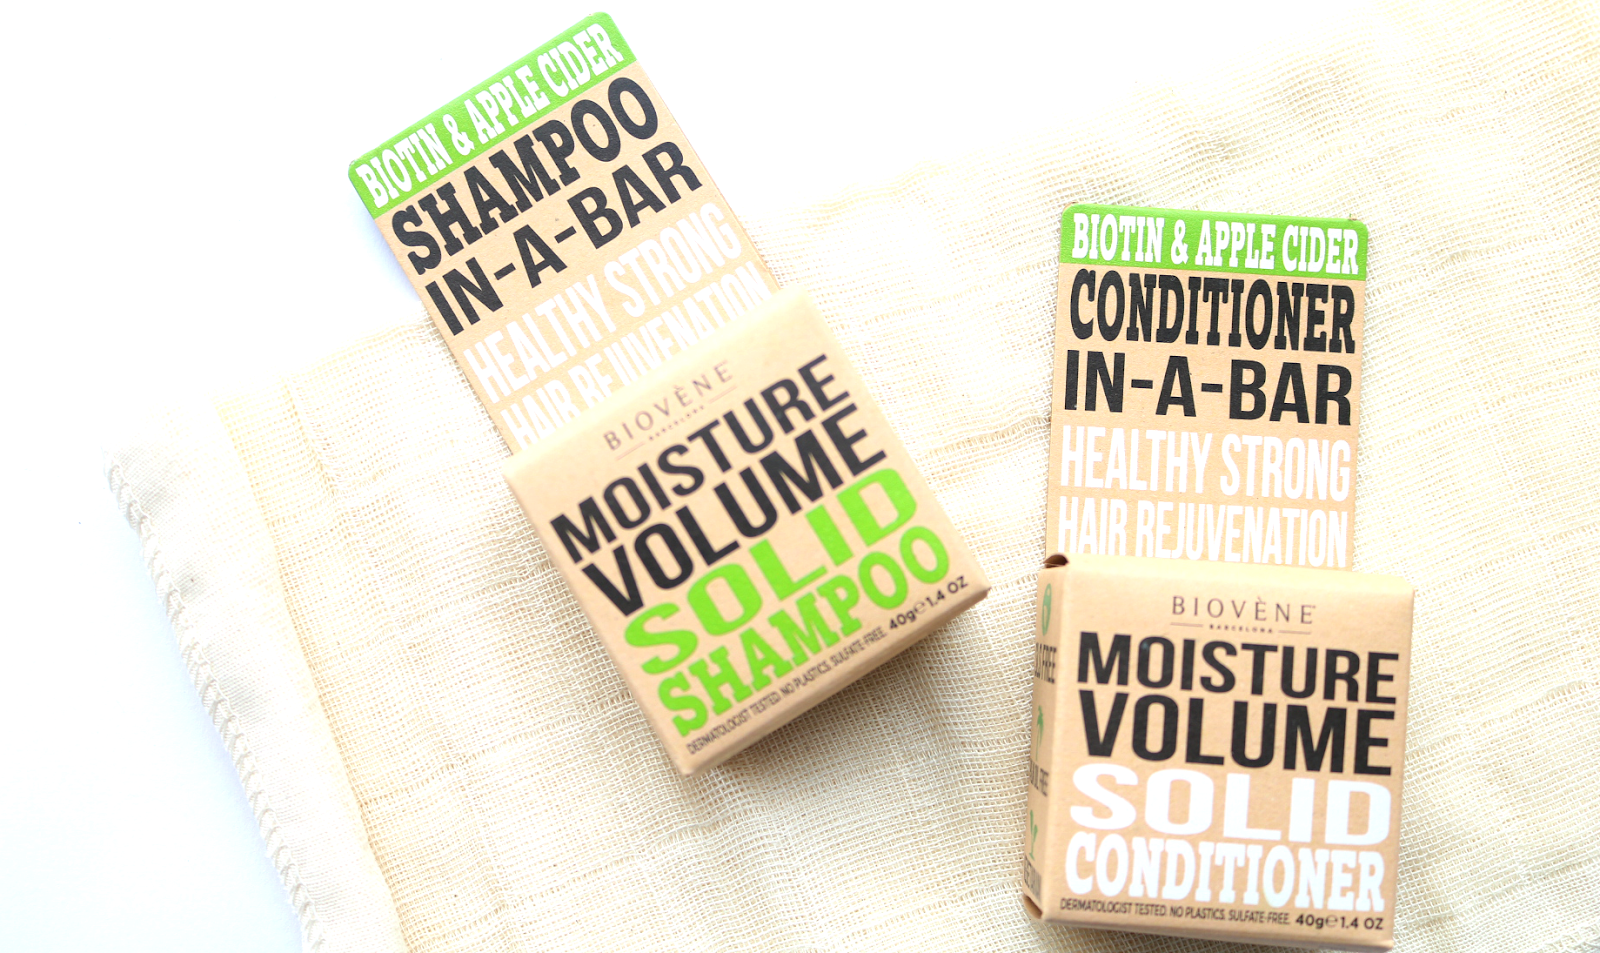 Biovène Barcelona Moisture Volume Solid Shampoo & Conditioner review